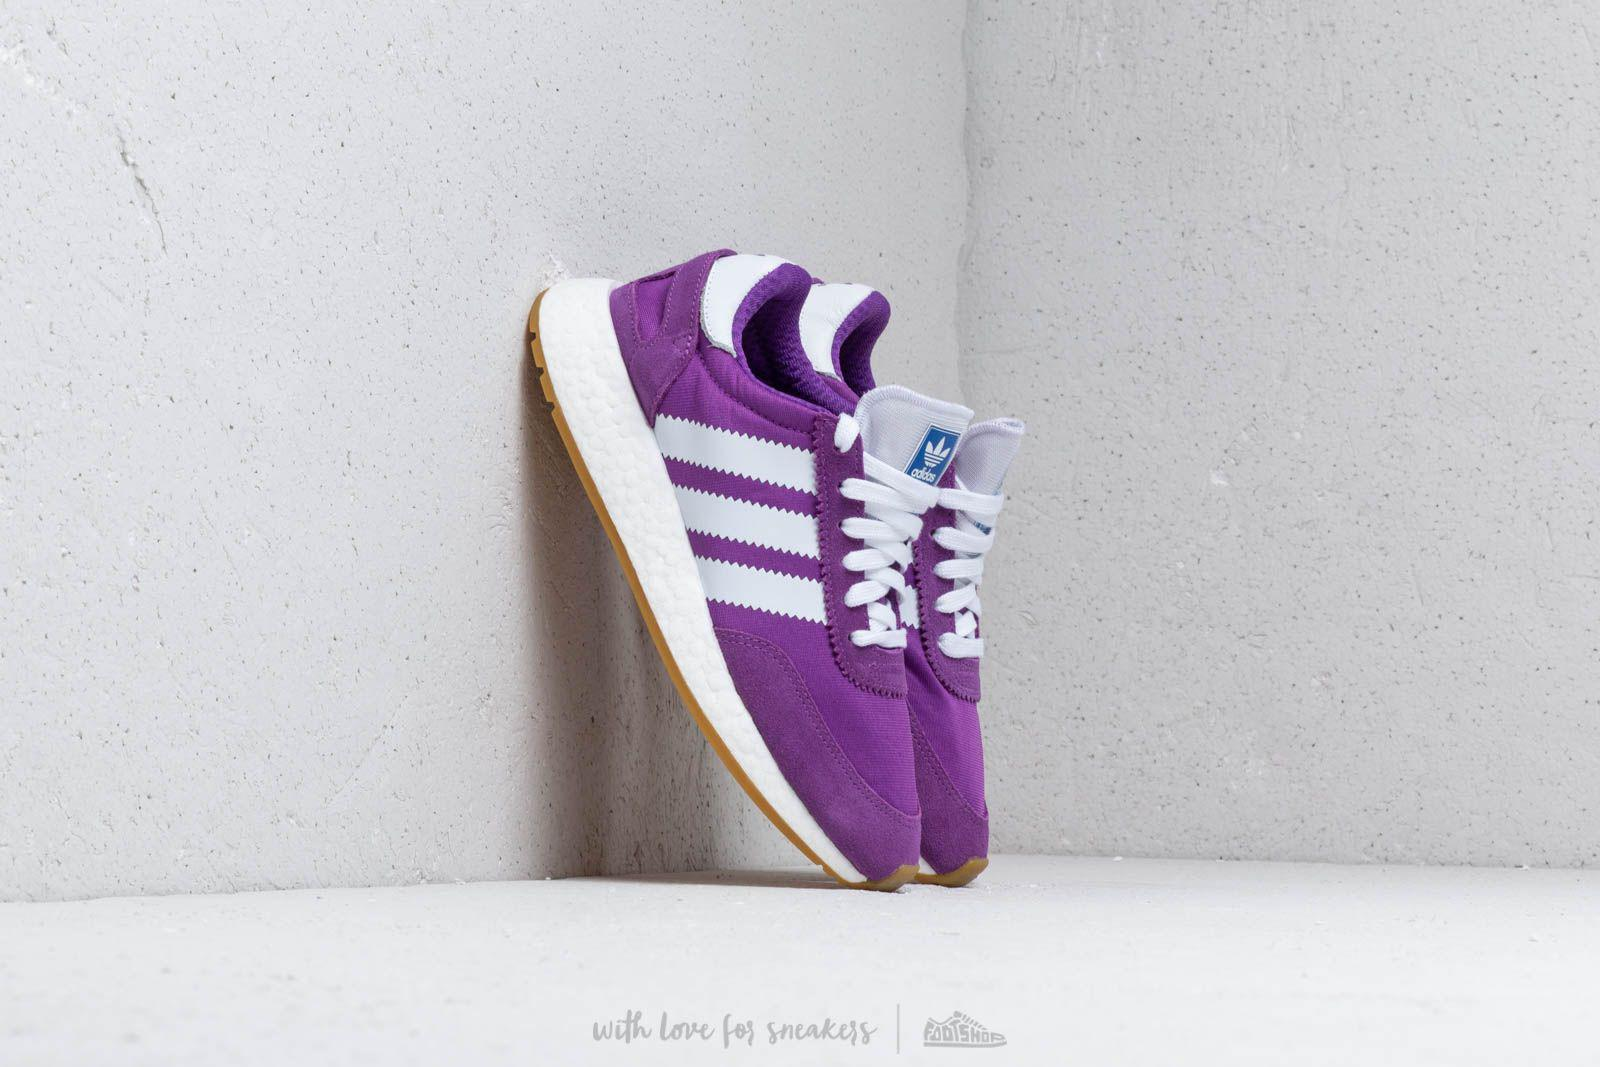 cd70f80c5b34 Lyst - adidas Originals Adidas I-5923 W Active Purple  Cloud White ...